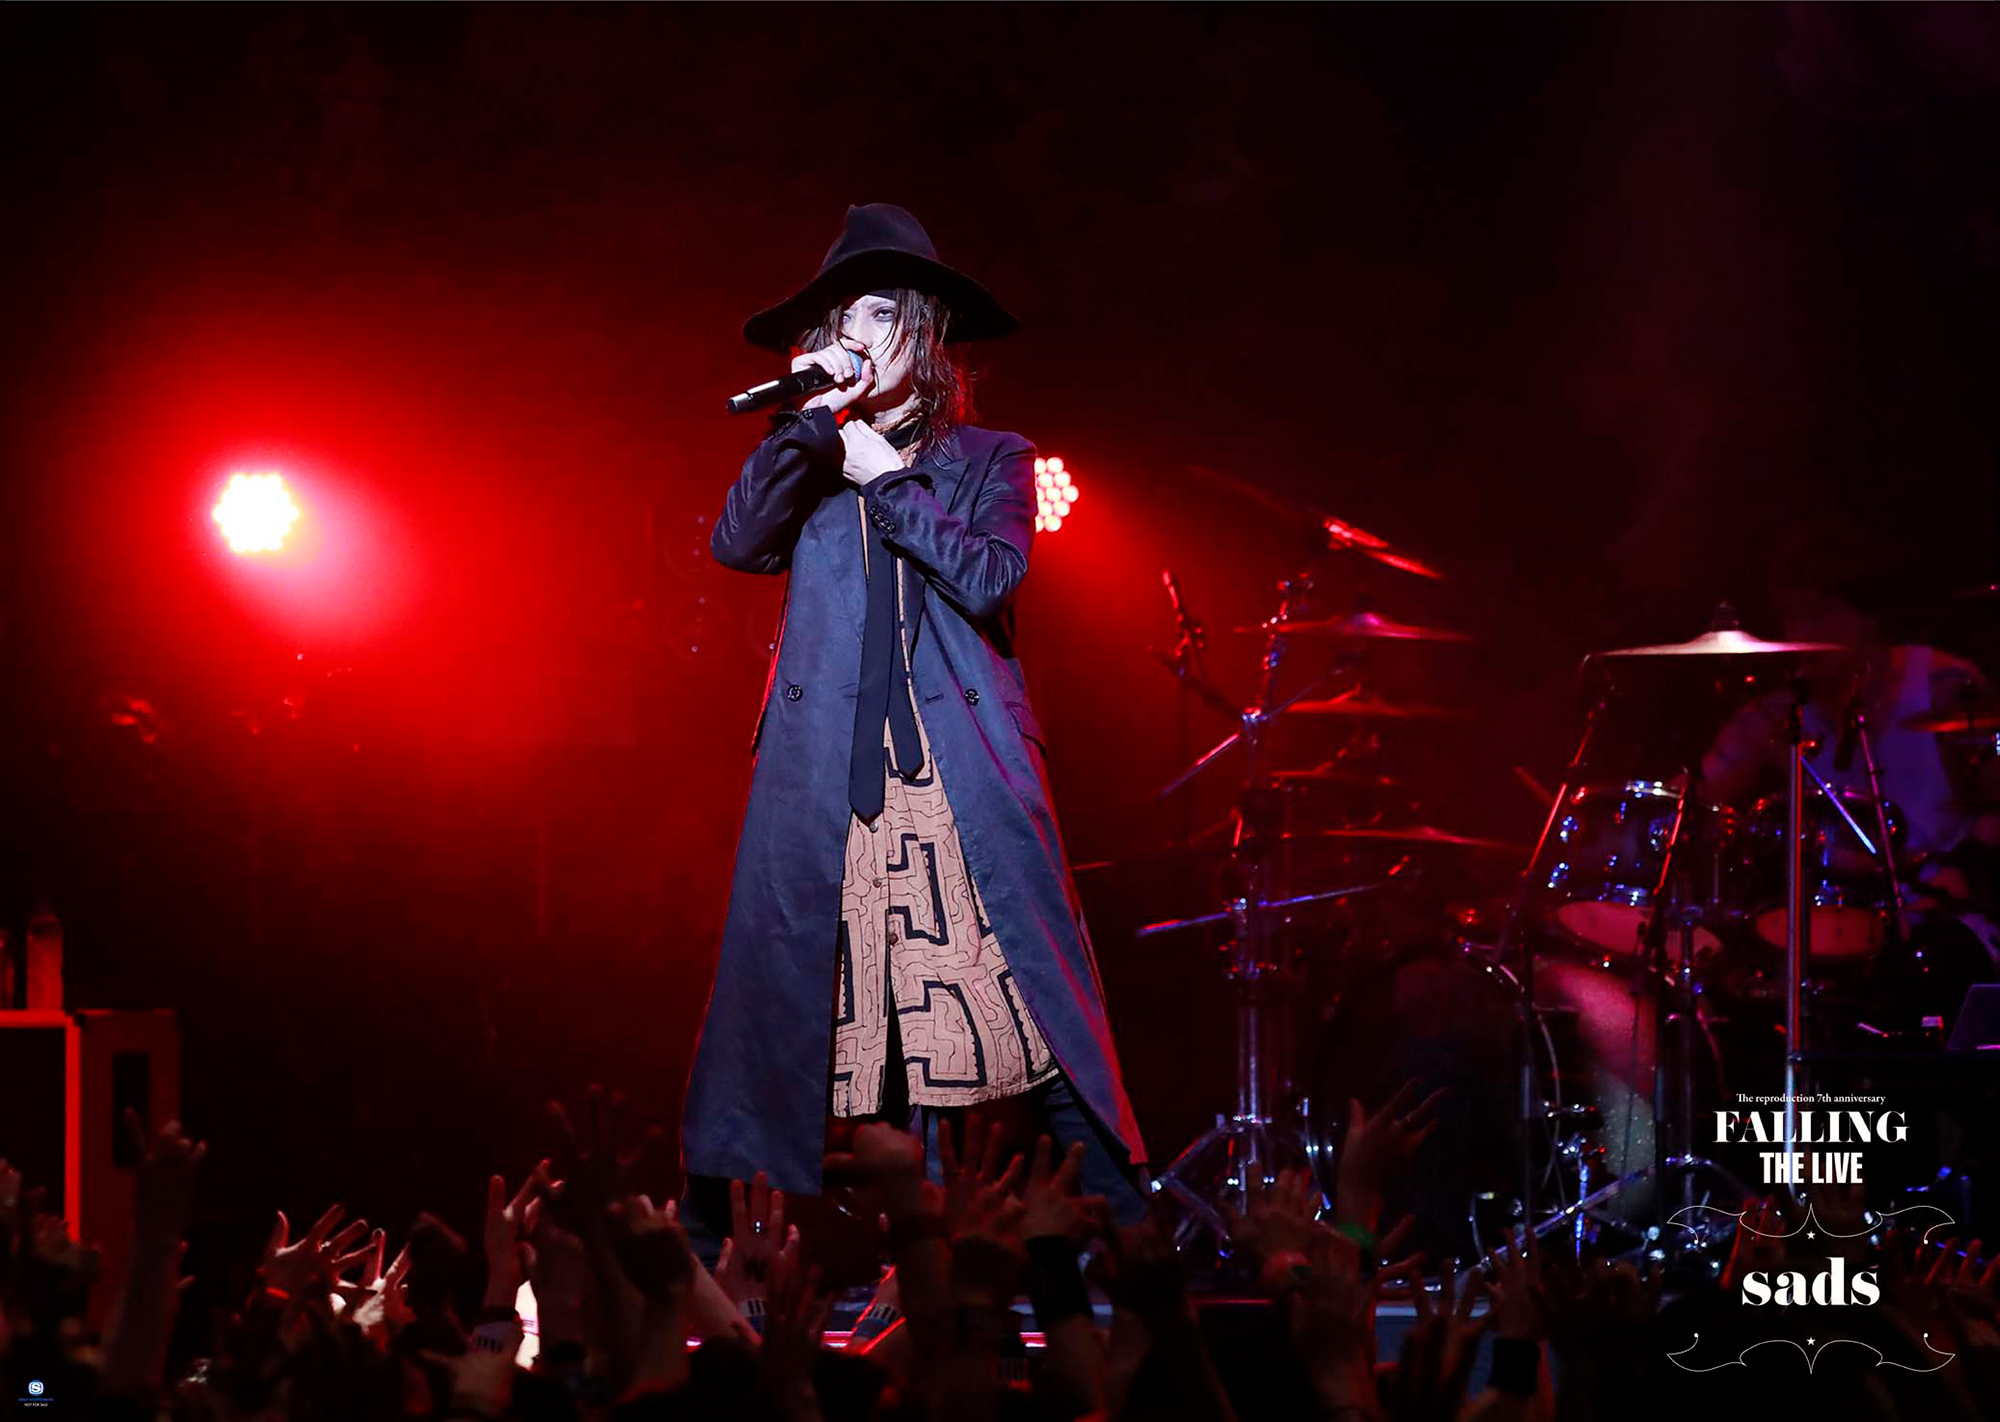 「The reproduction 7th anniversary『FALLING』THE LIVE」先着購入特典B2ポスター